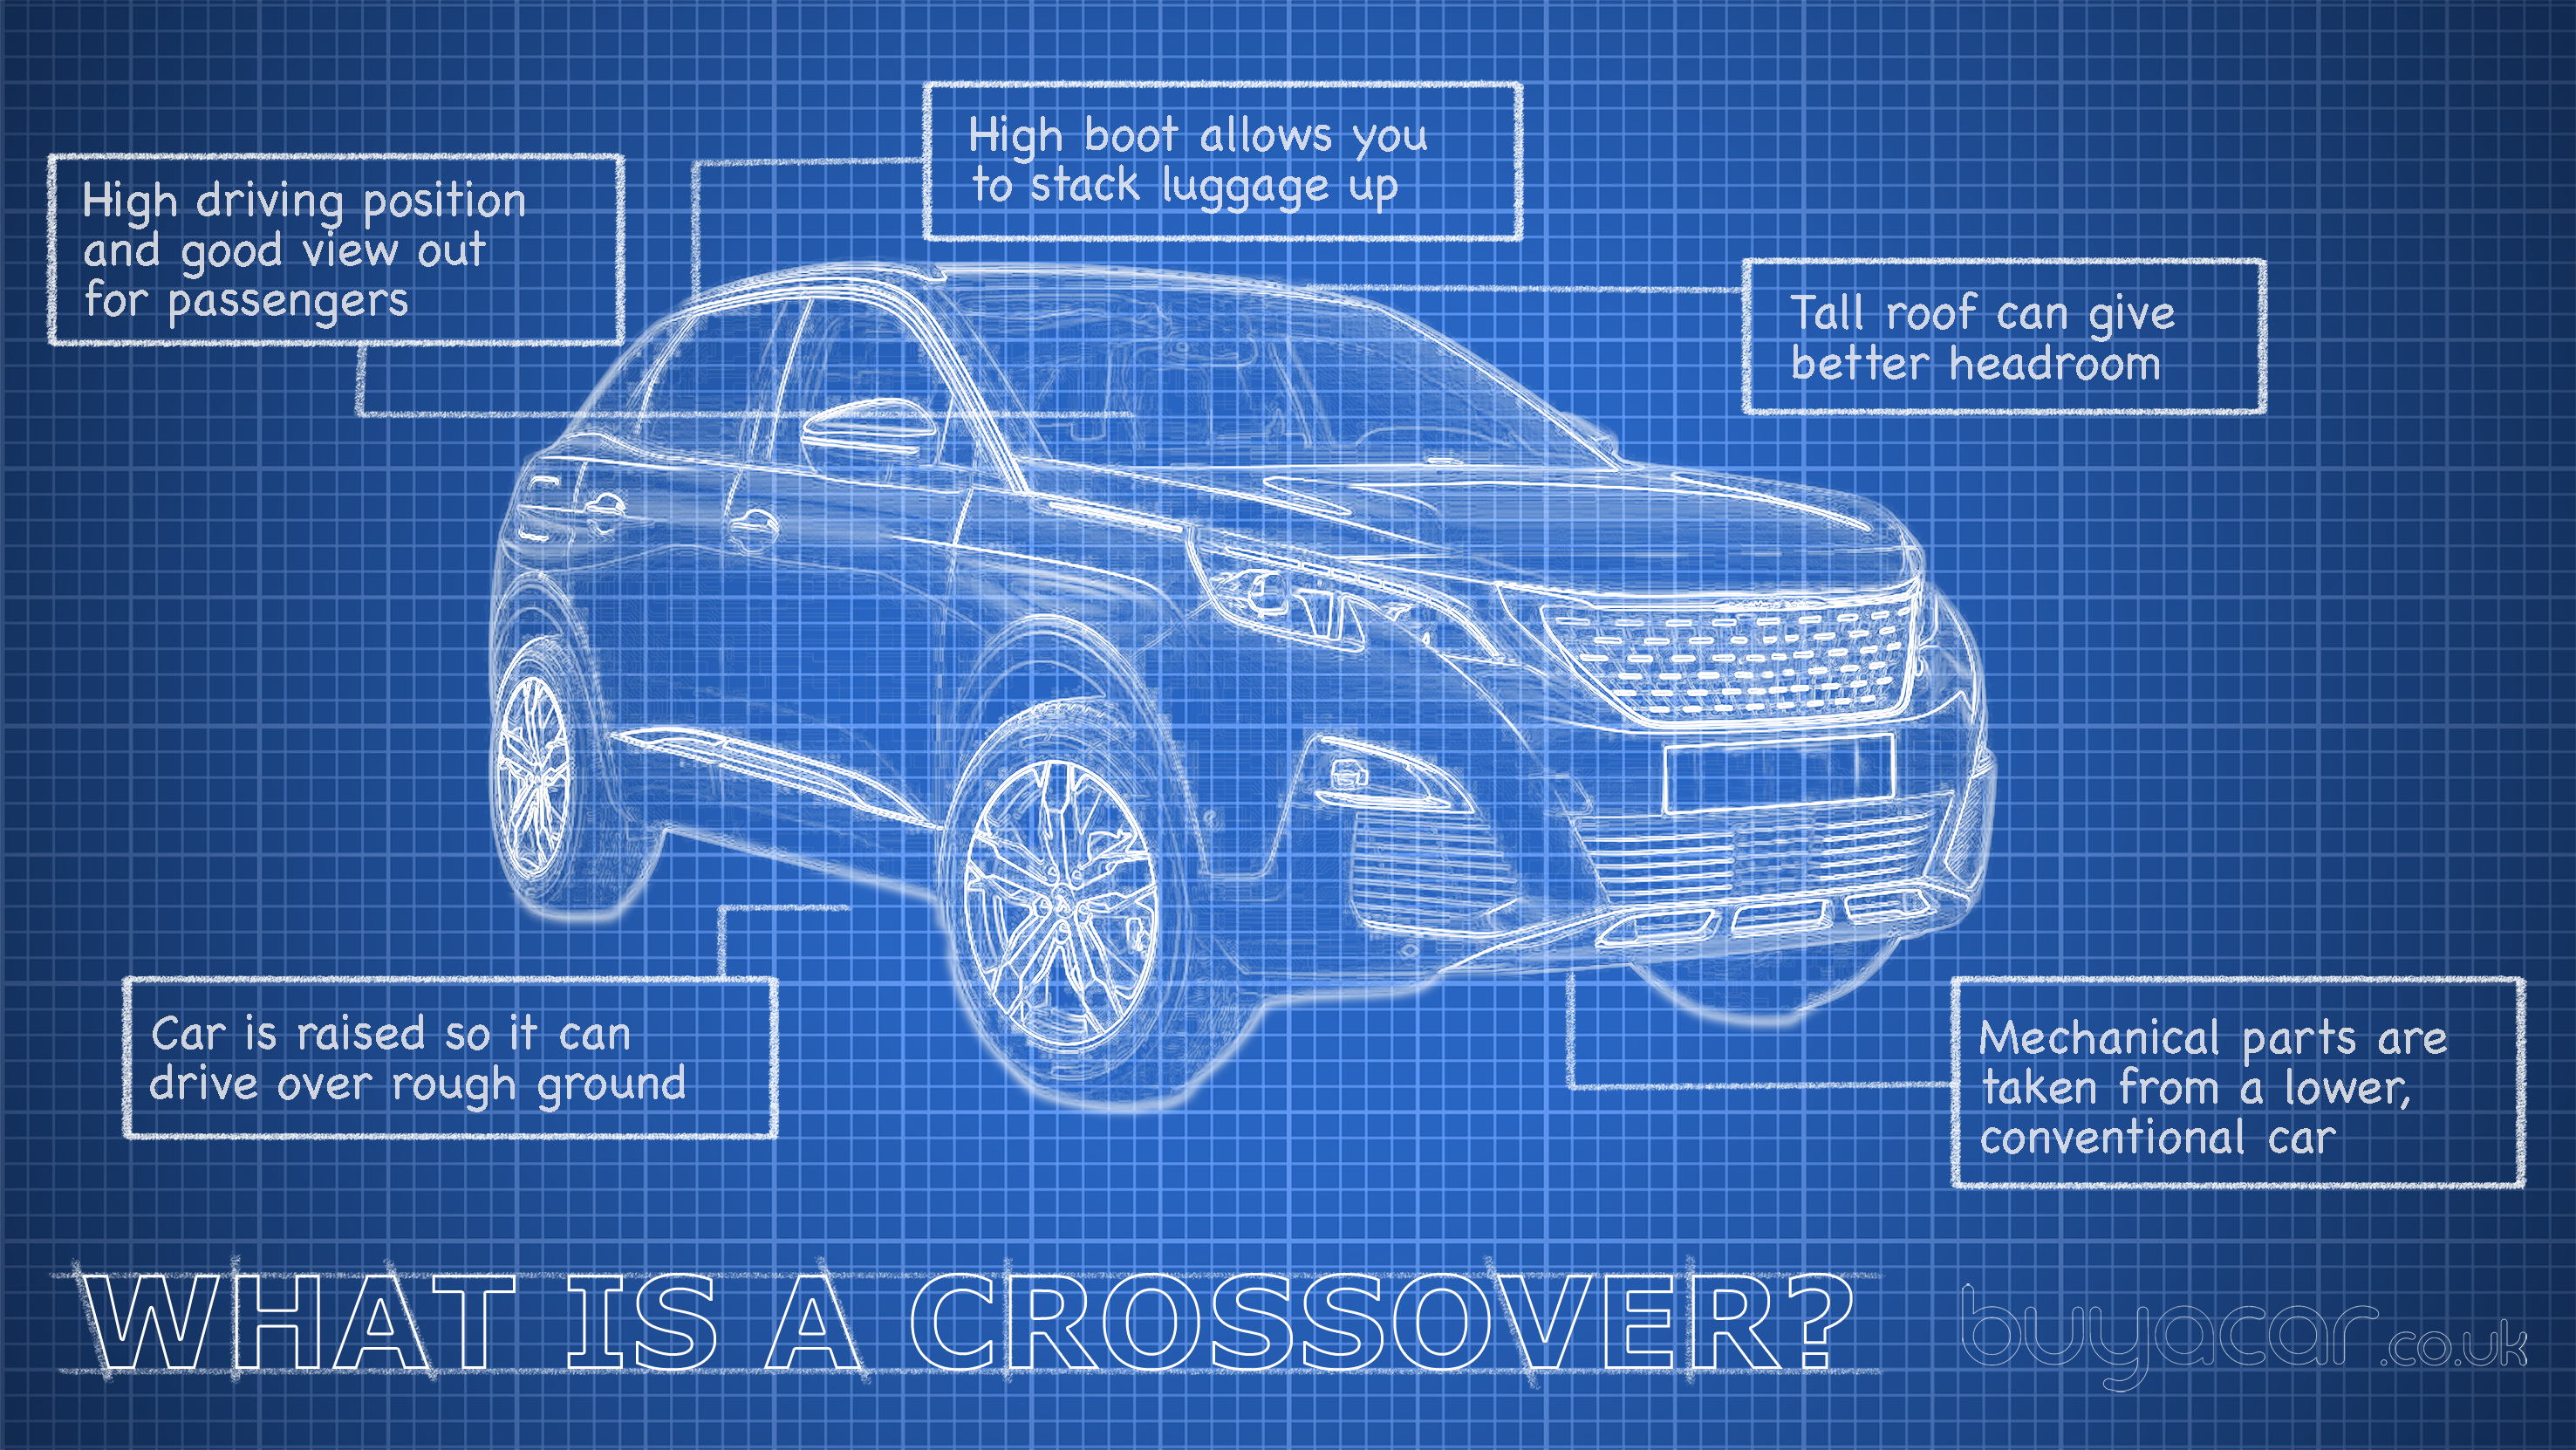 What is a crossover buyacar malvernweather Images